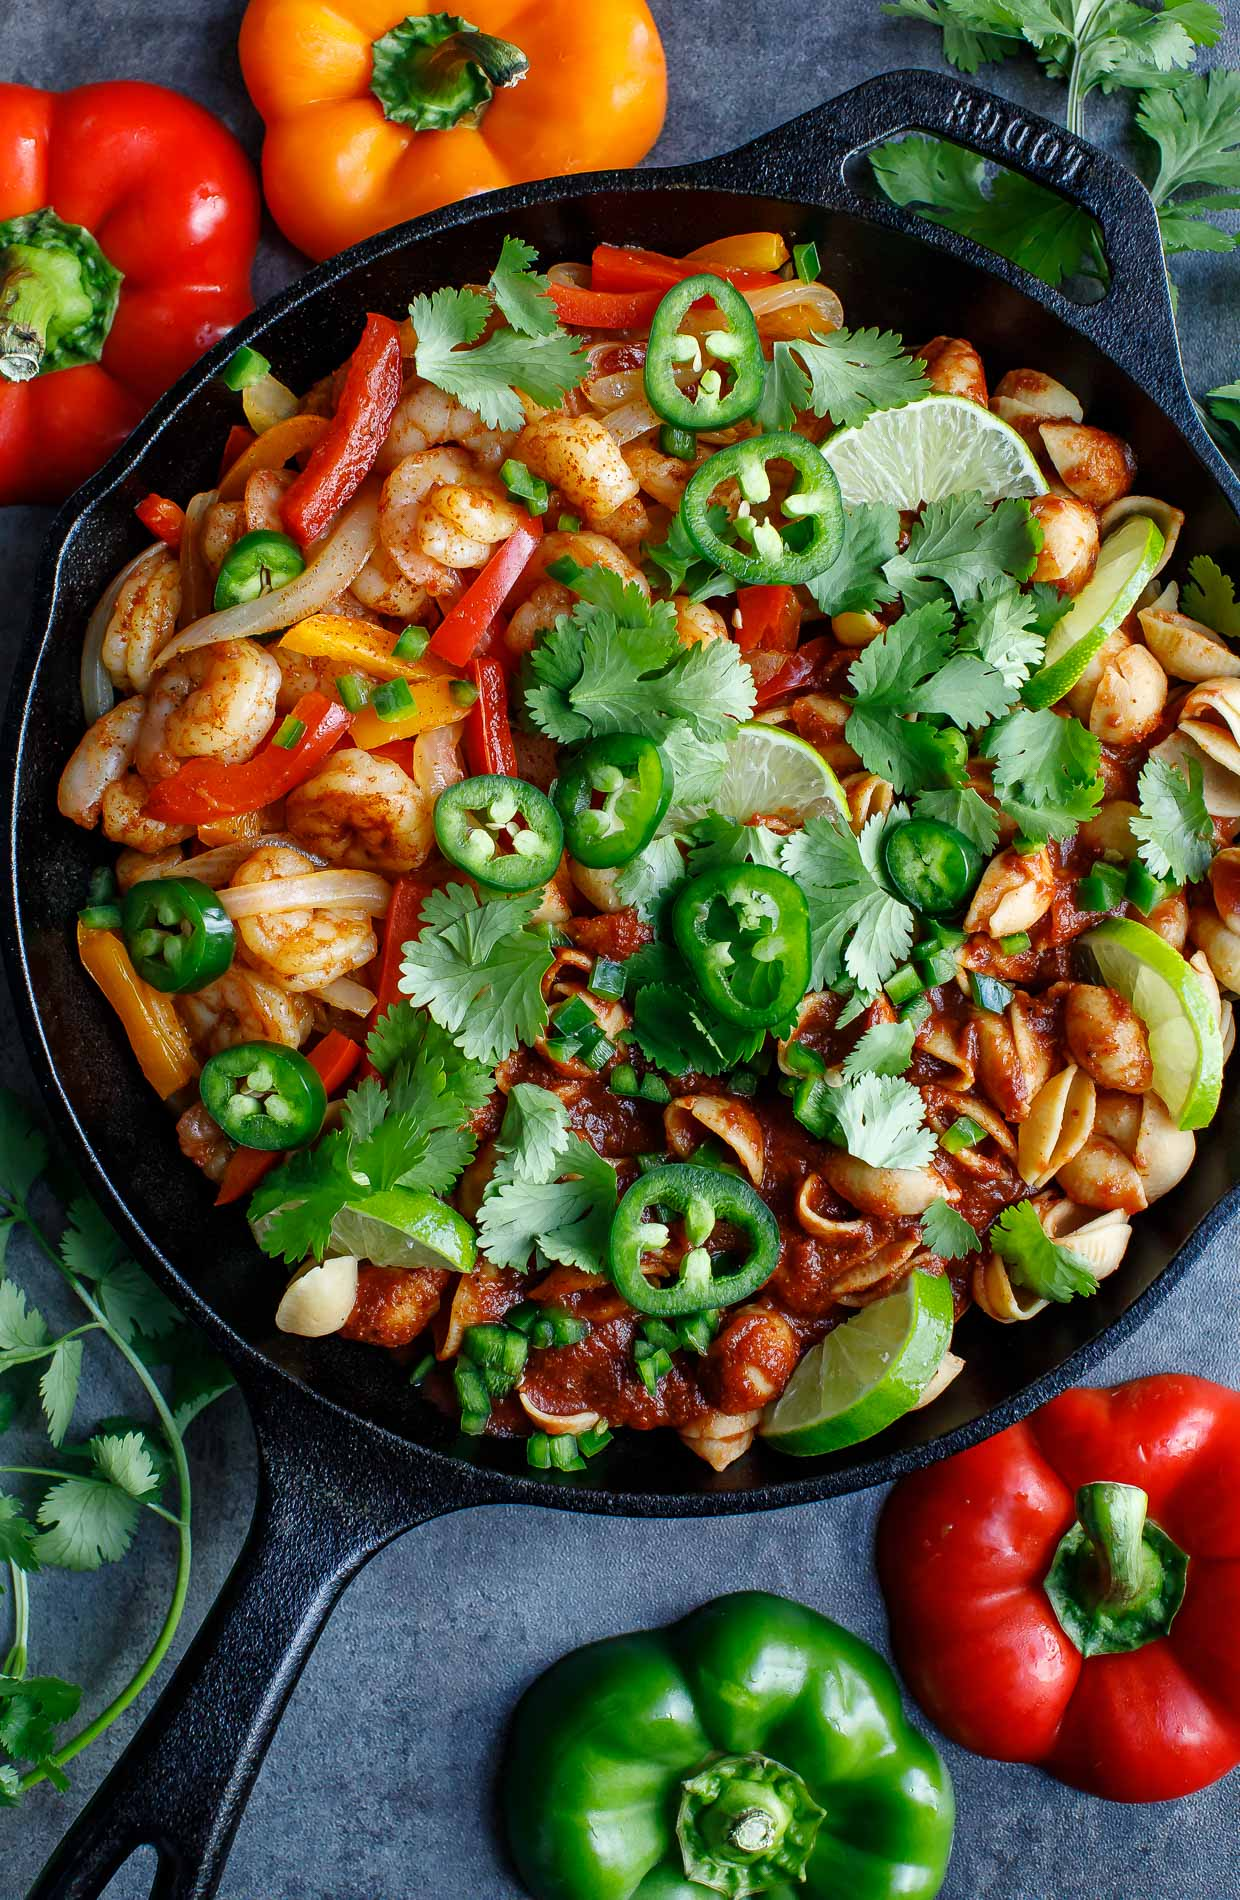 Tasty One-Pot Shrimp Fajita Pasta Skillet